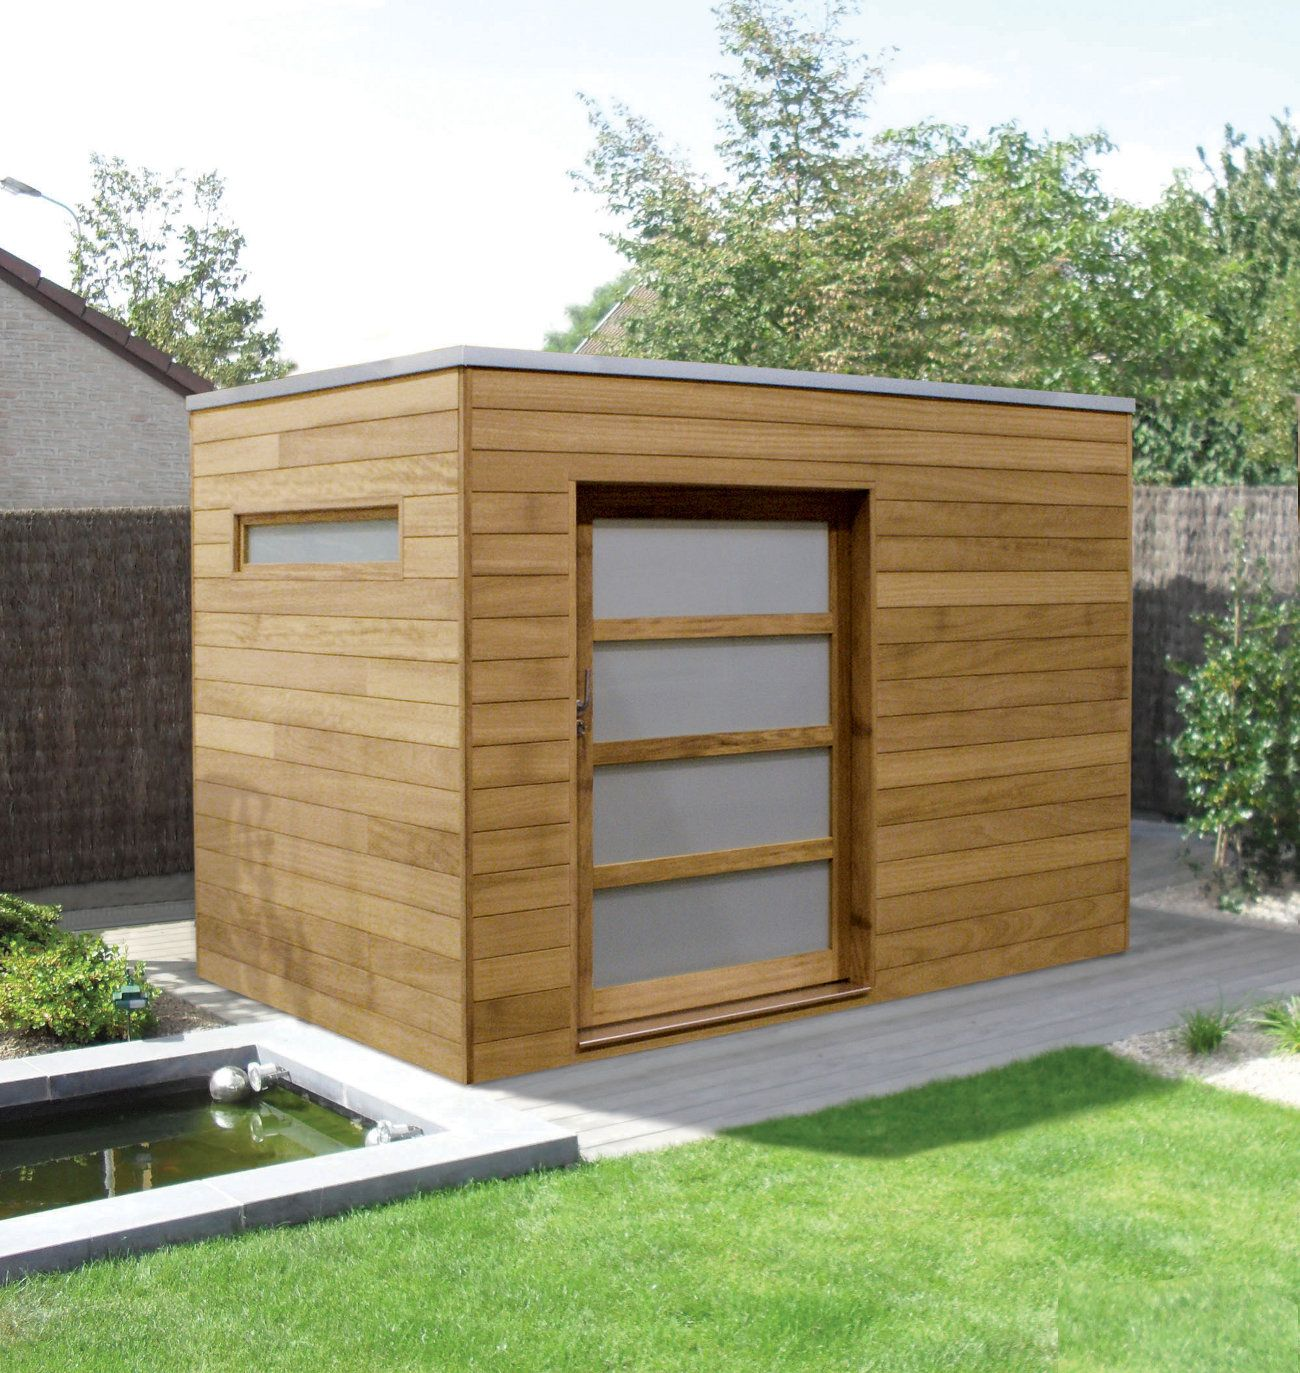 Modern garden sheds to style with our new innovative range of contemporary garden sheds